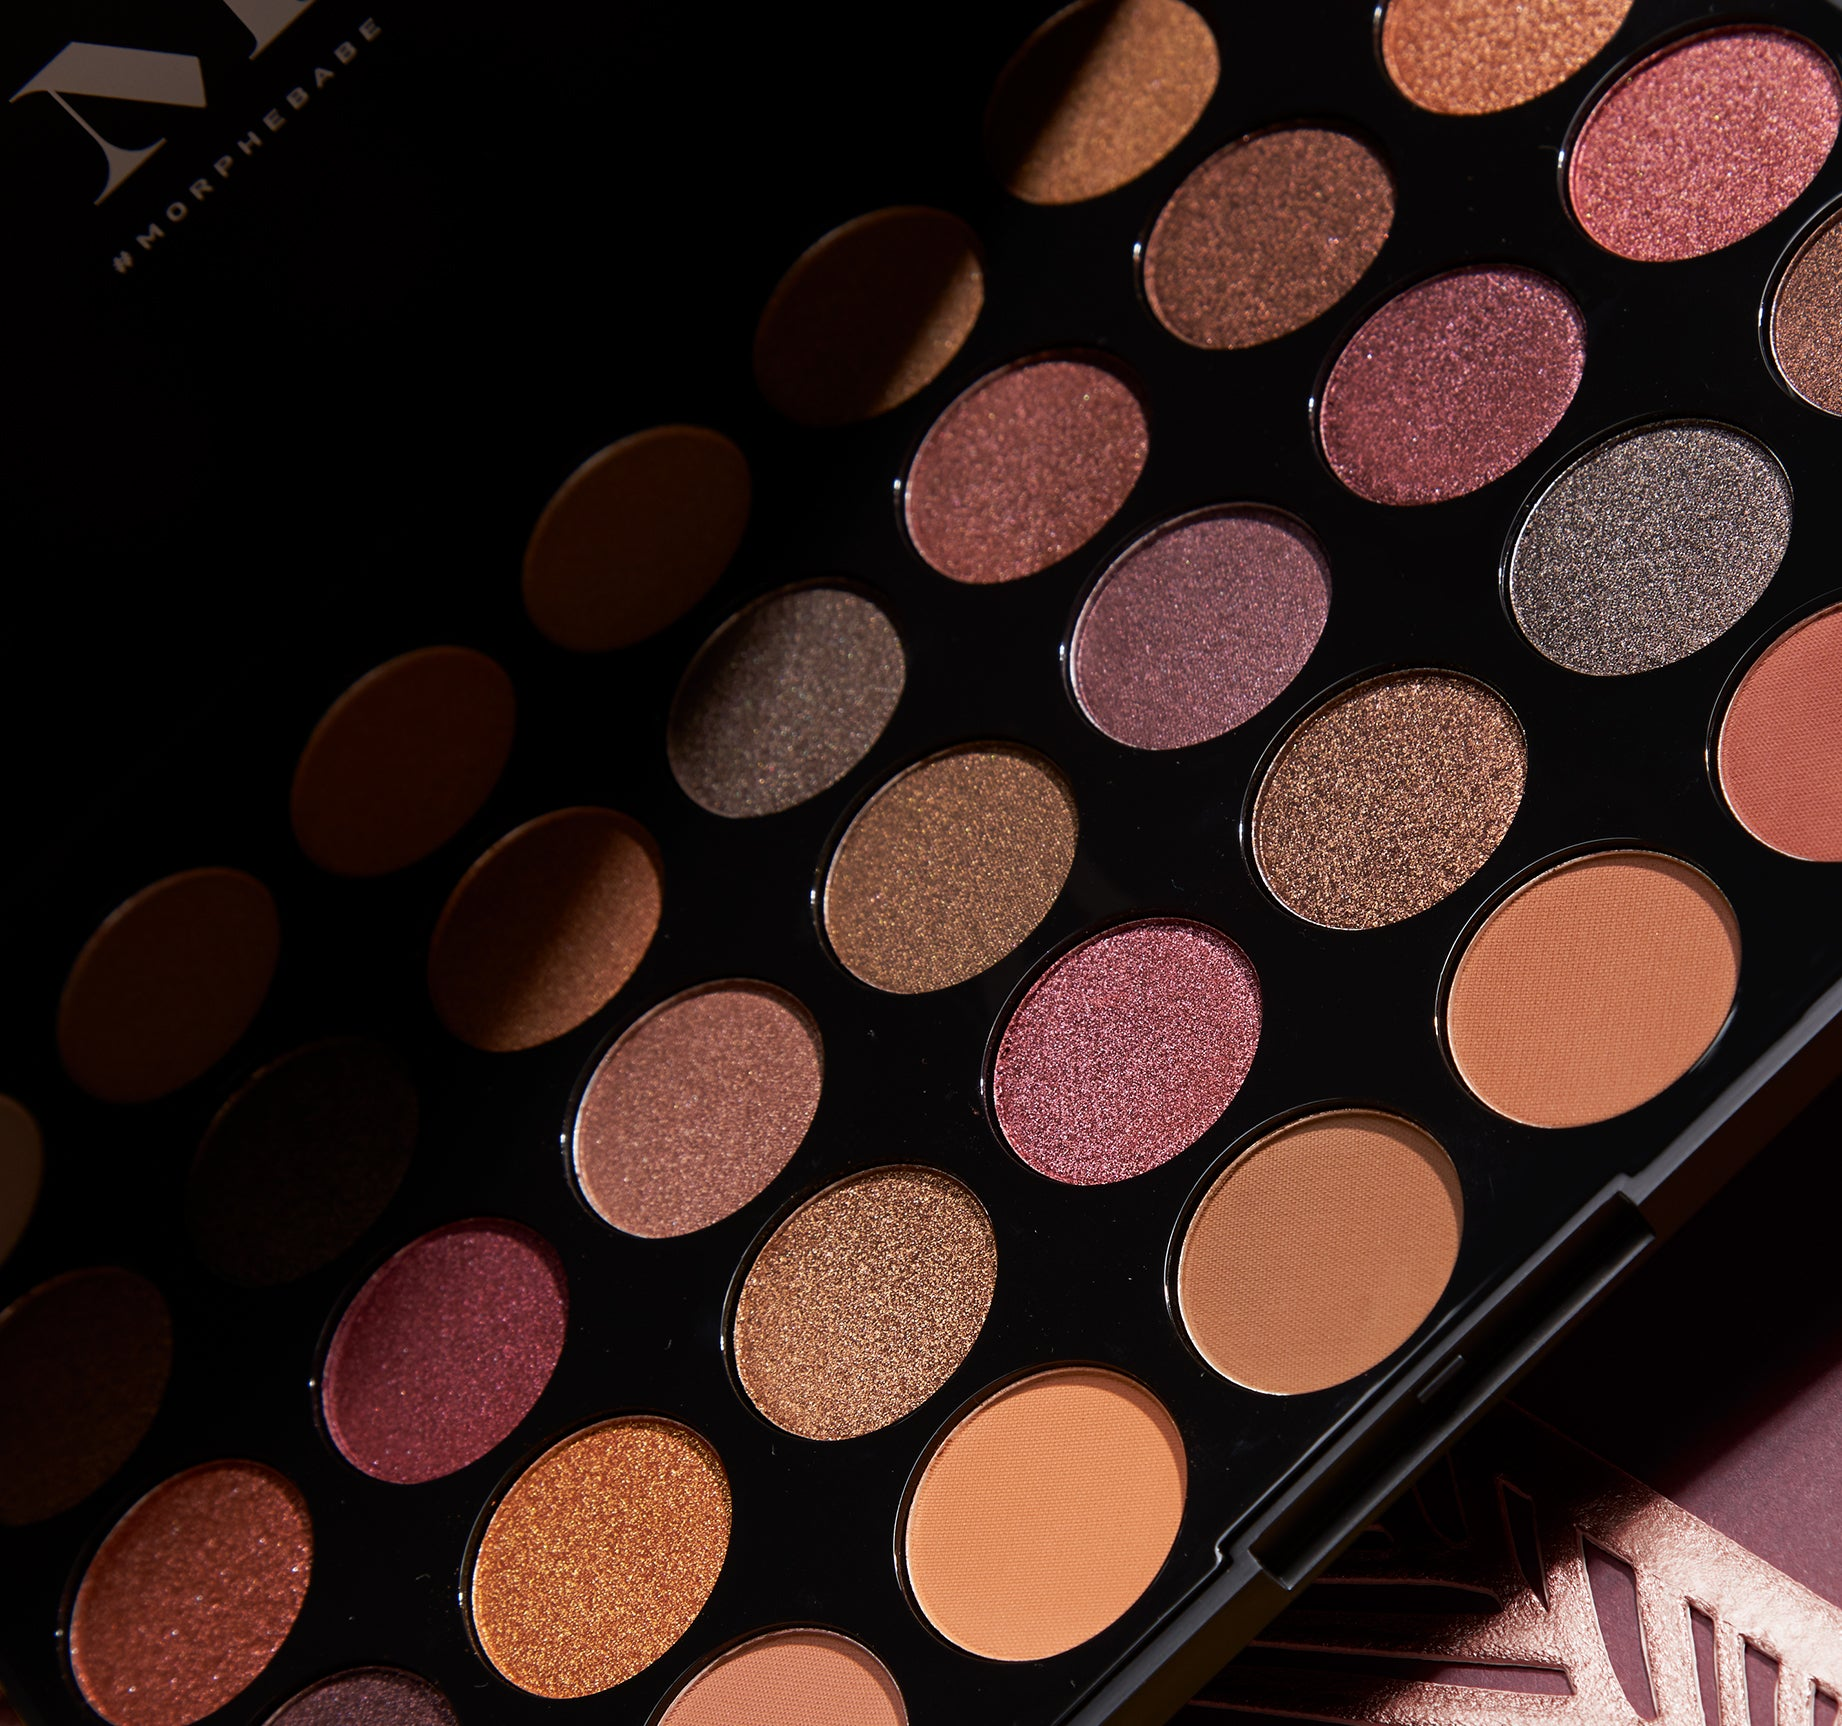 35f Fall Into Frost Eyeshadow Palette Morphe Us Lt Pro Naturally Glam Eye Shadow